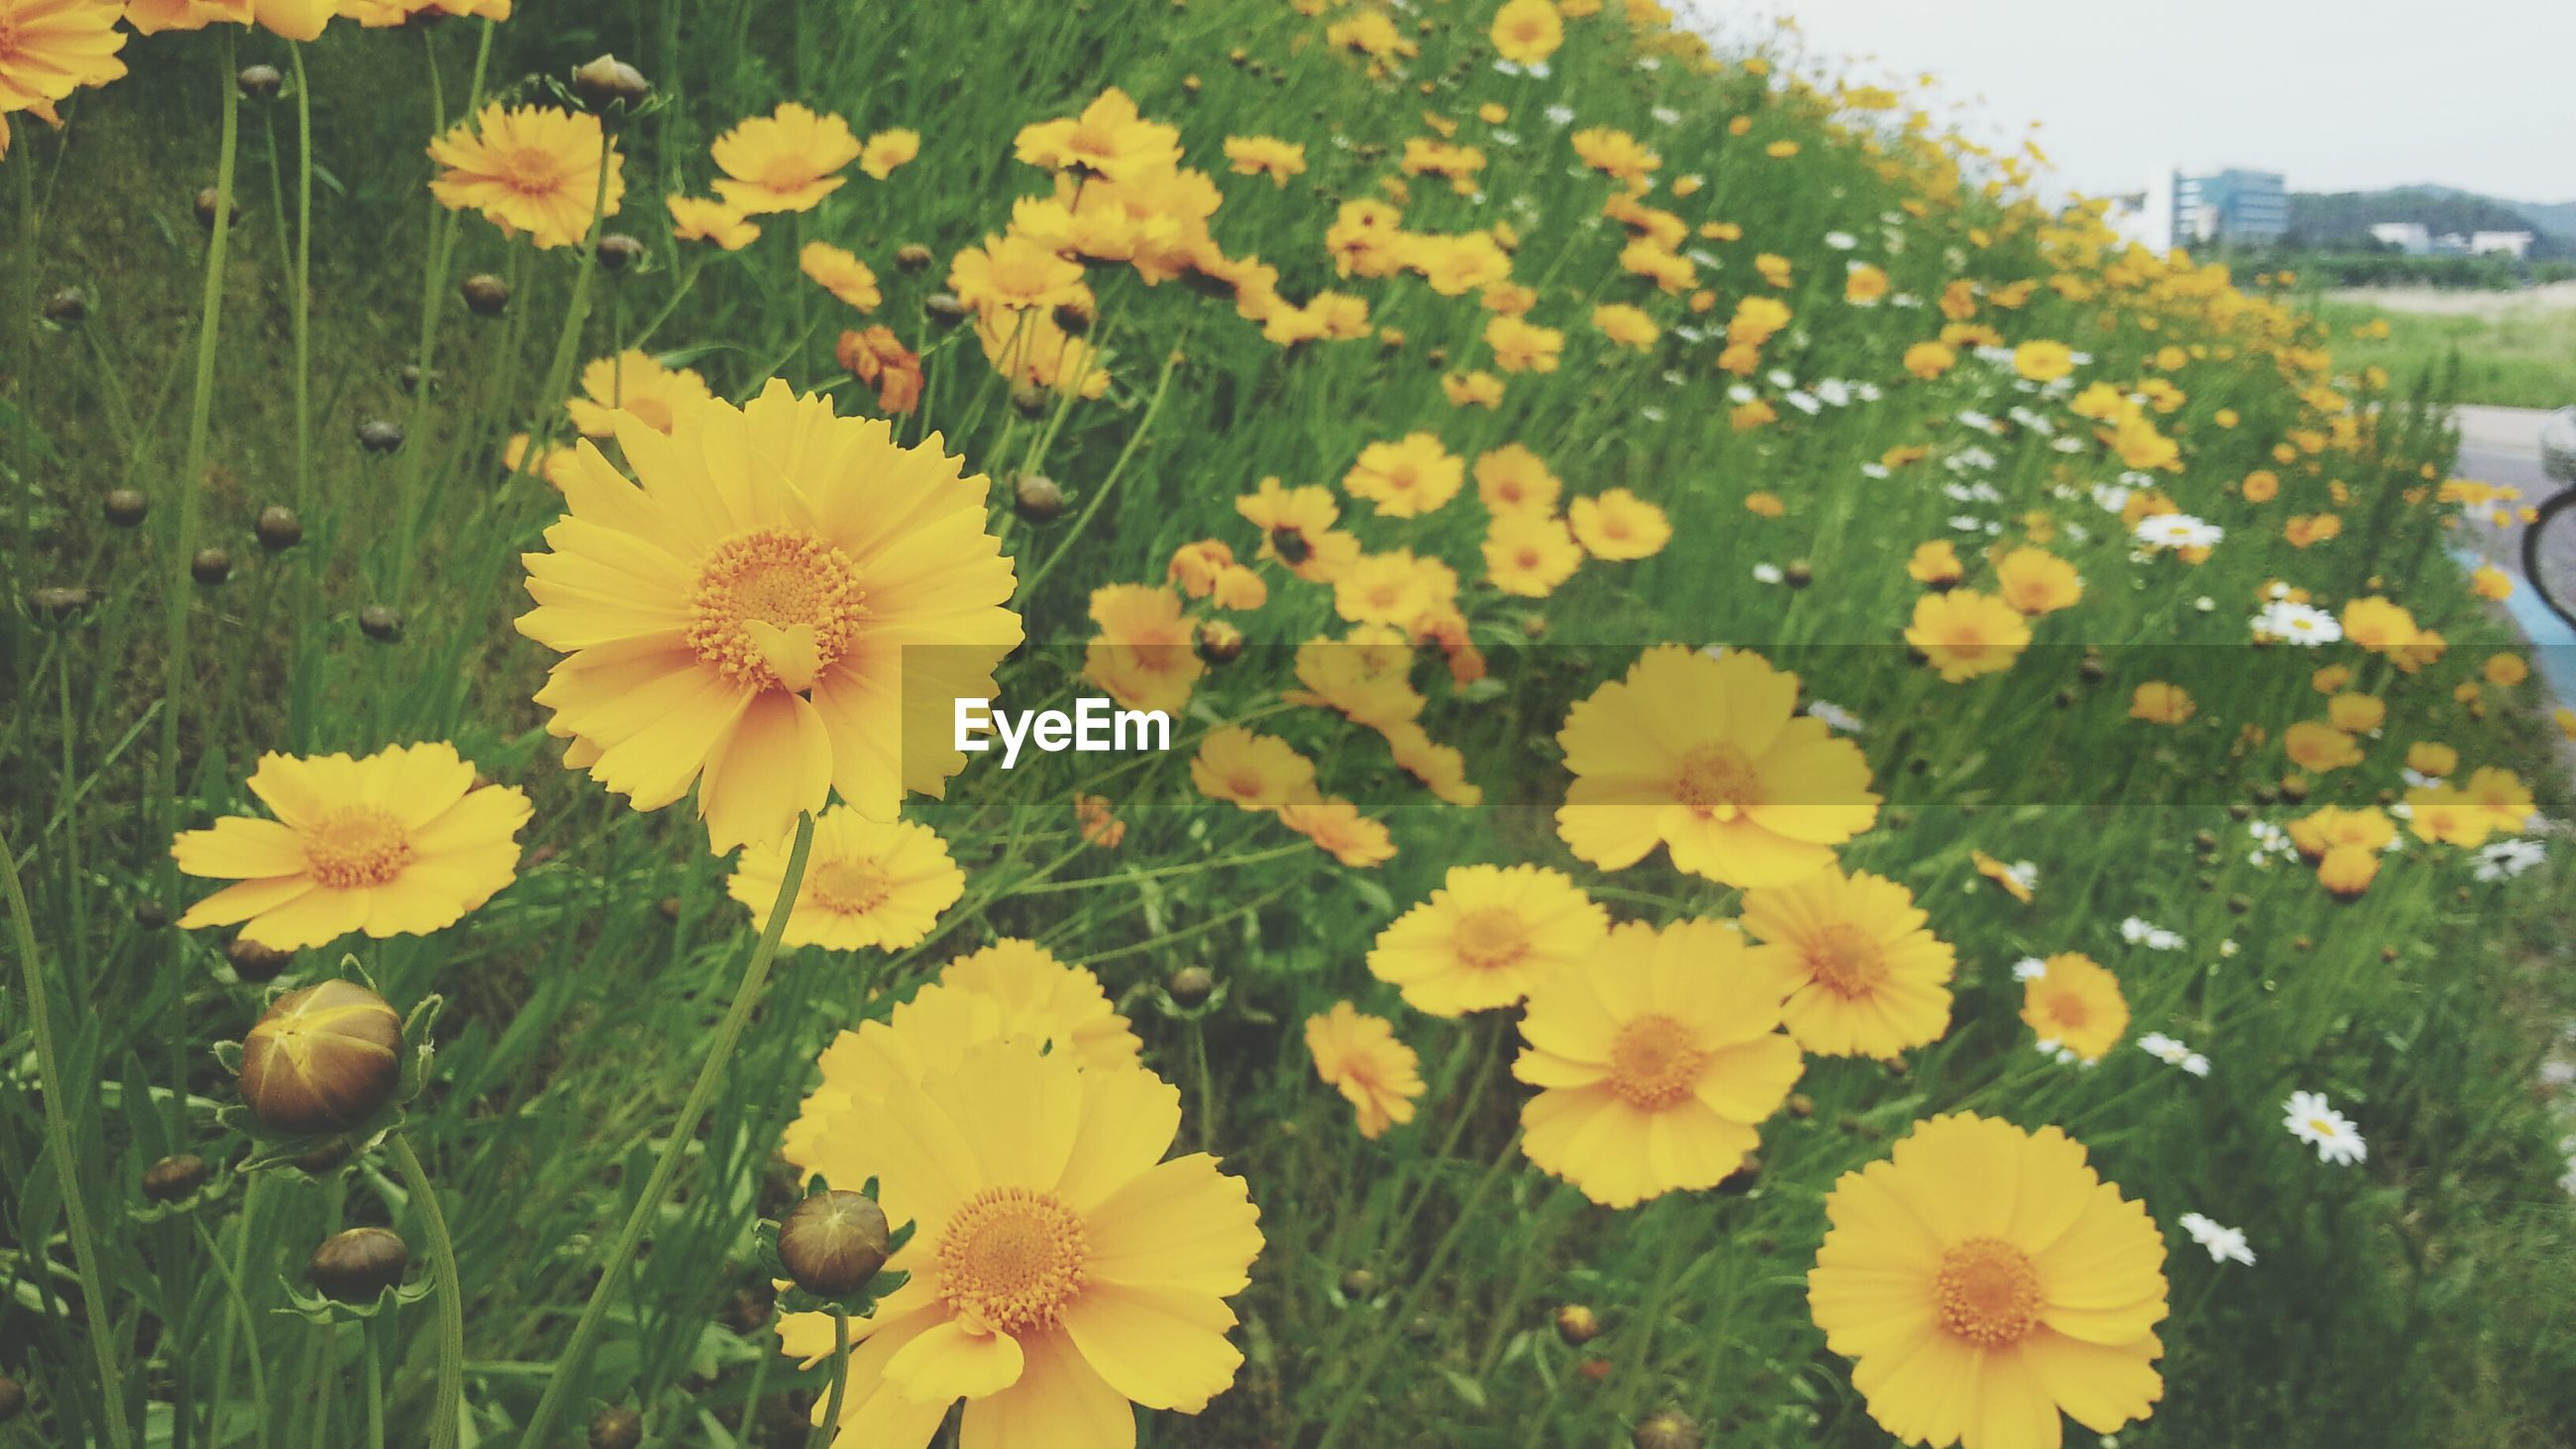 flower, freshness, fragility, petal, yellow, flower head, growth, beauty in nature, blooming, plant, nature, in bloom, field, high angle view, blossom, pollen, close-up, focus on foreground, day, park - man made space